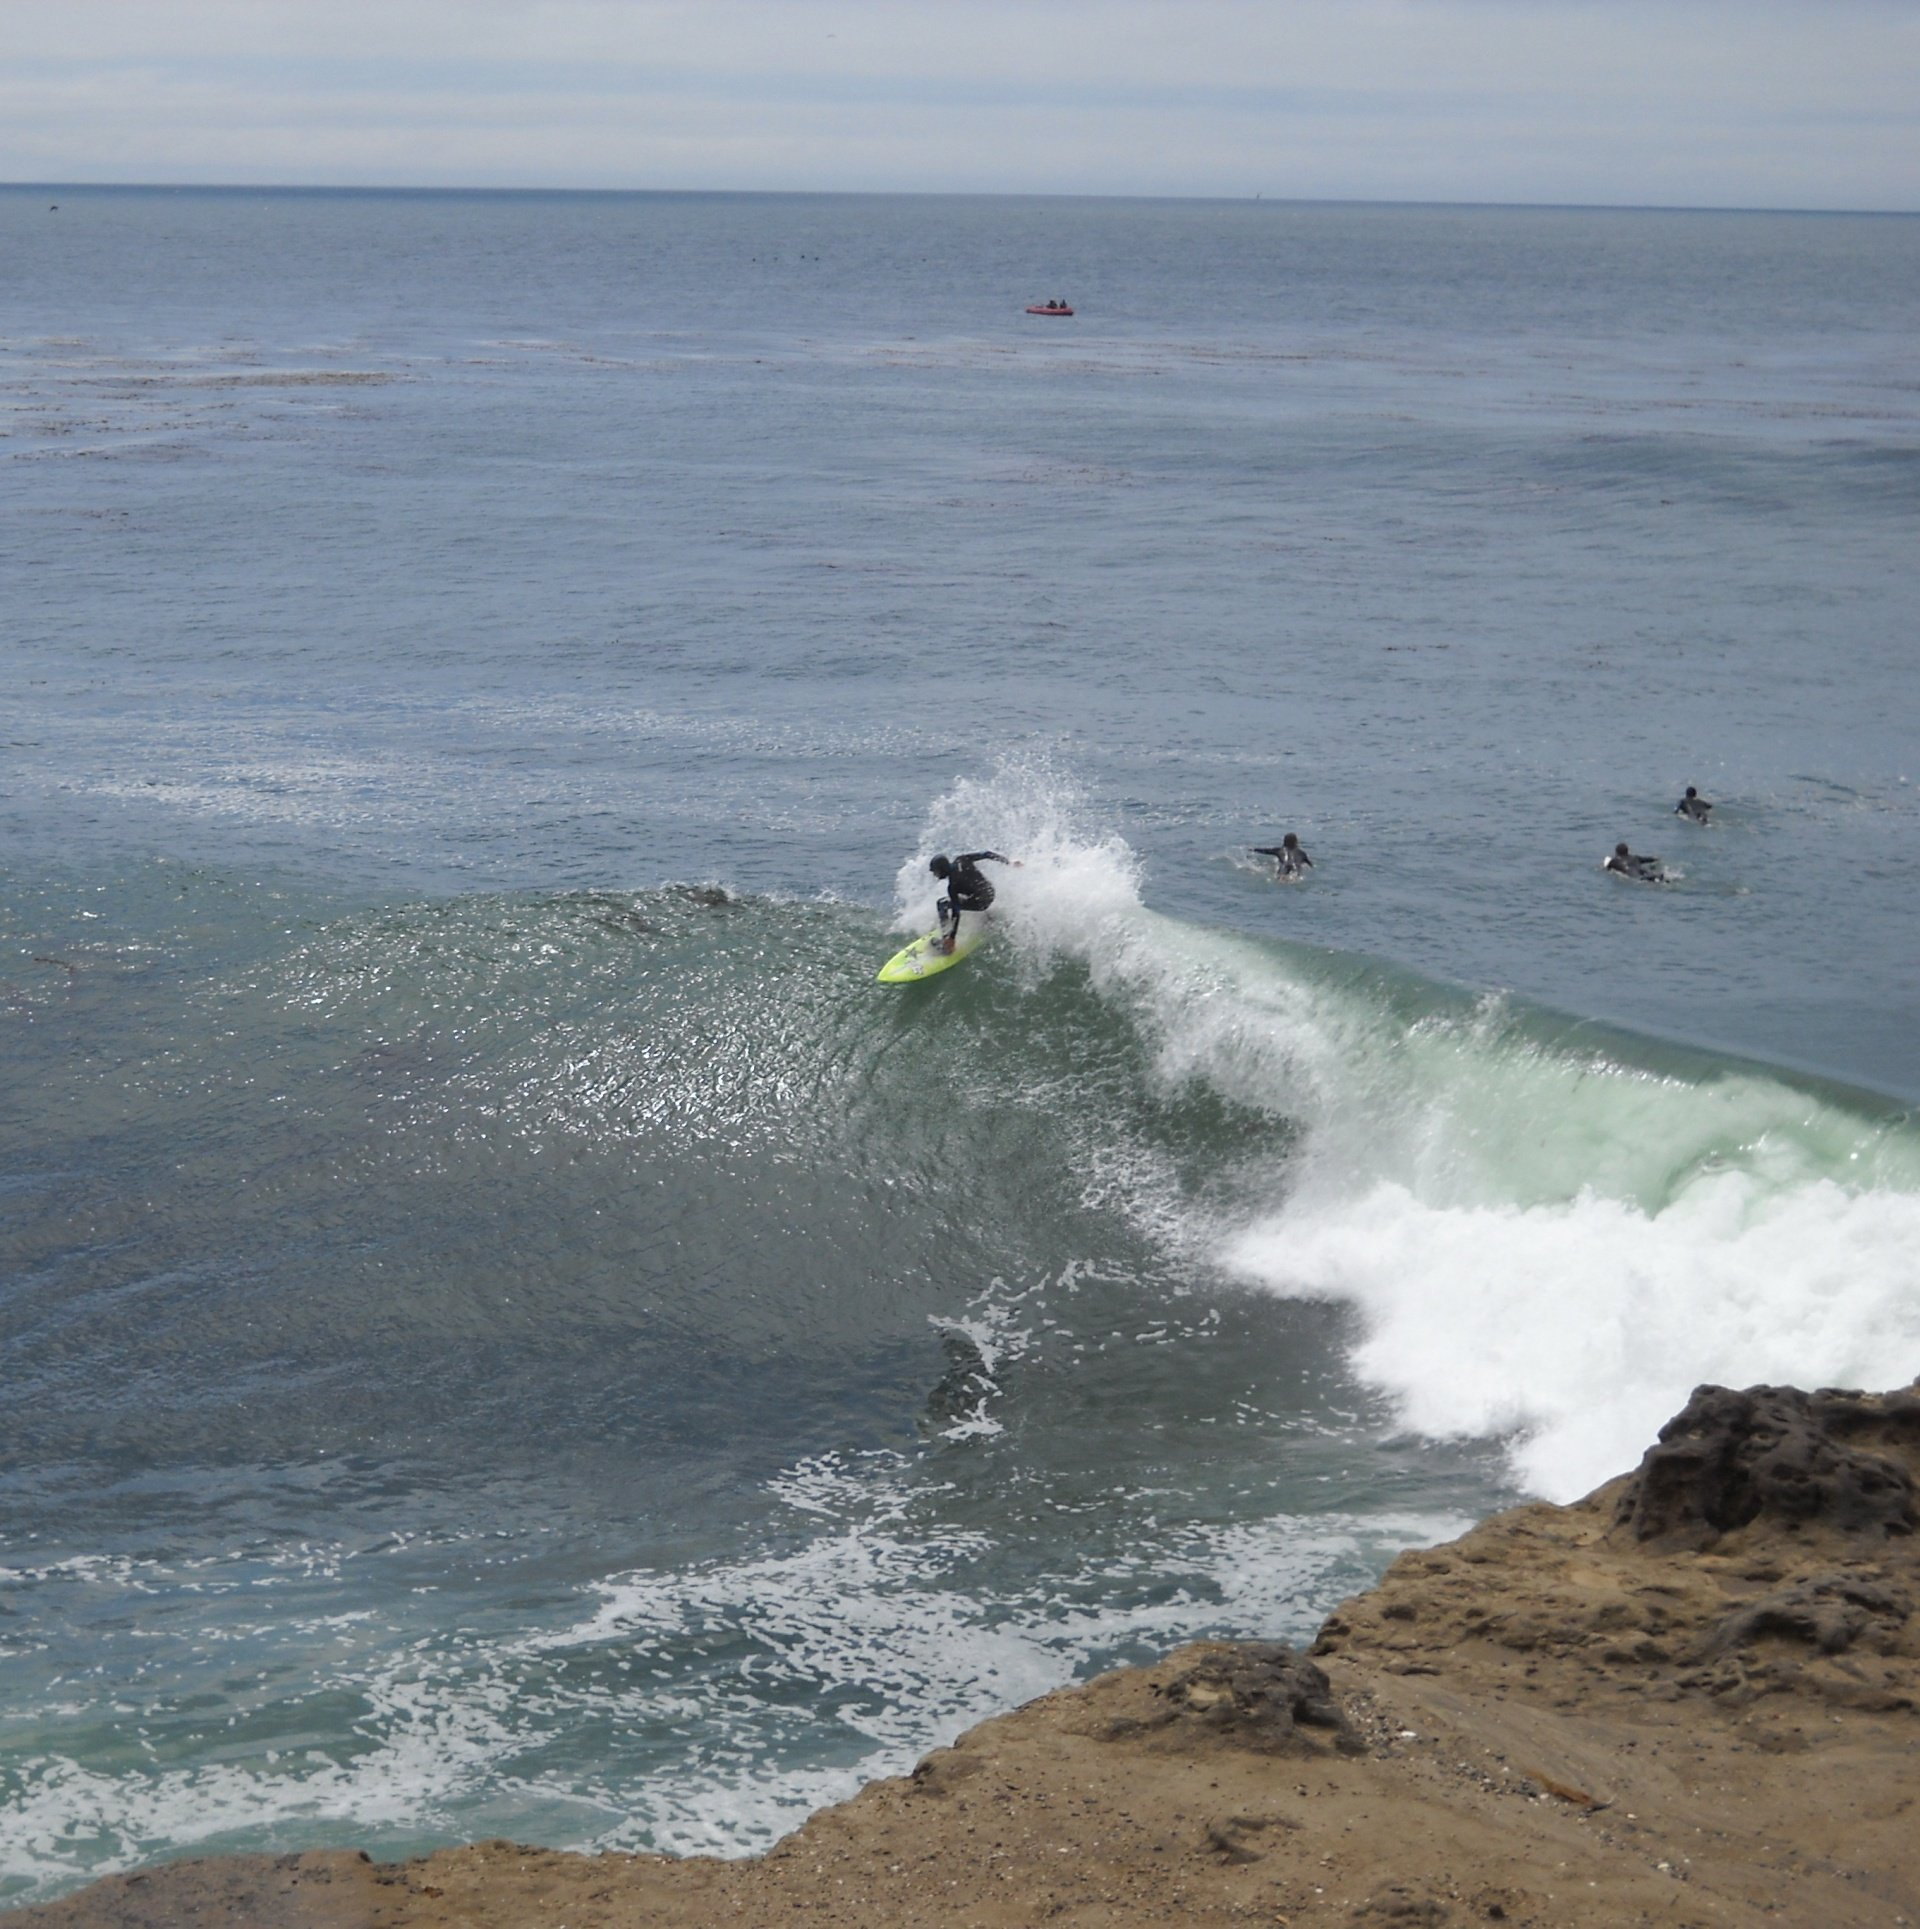 scr nyc's photo of Steamer Lane